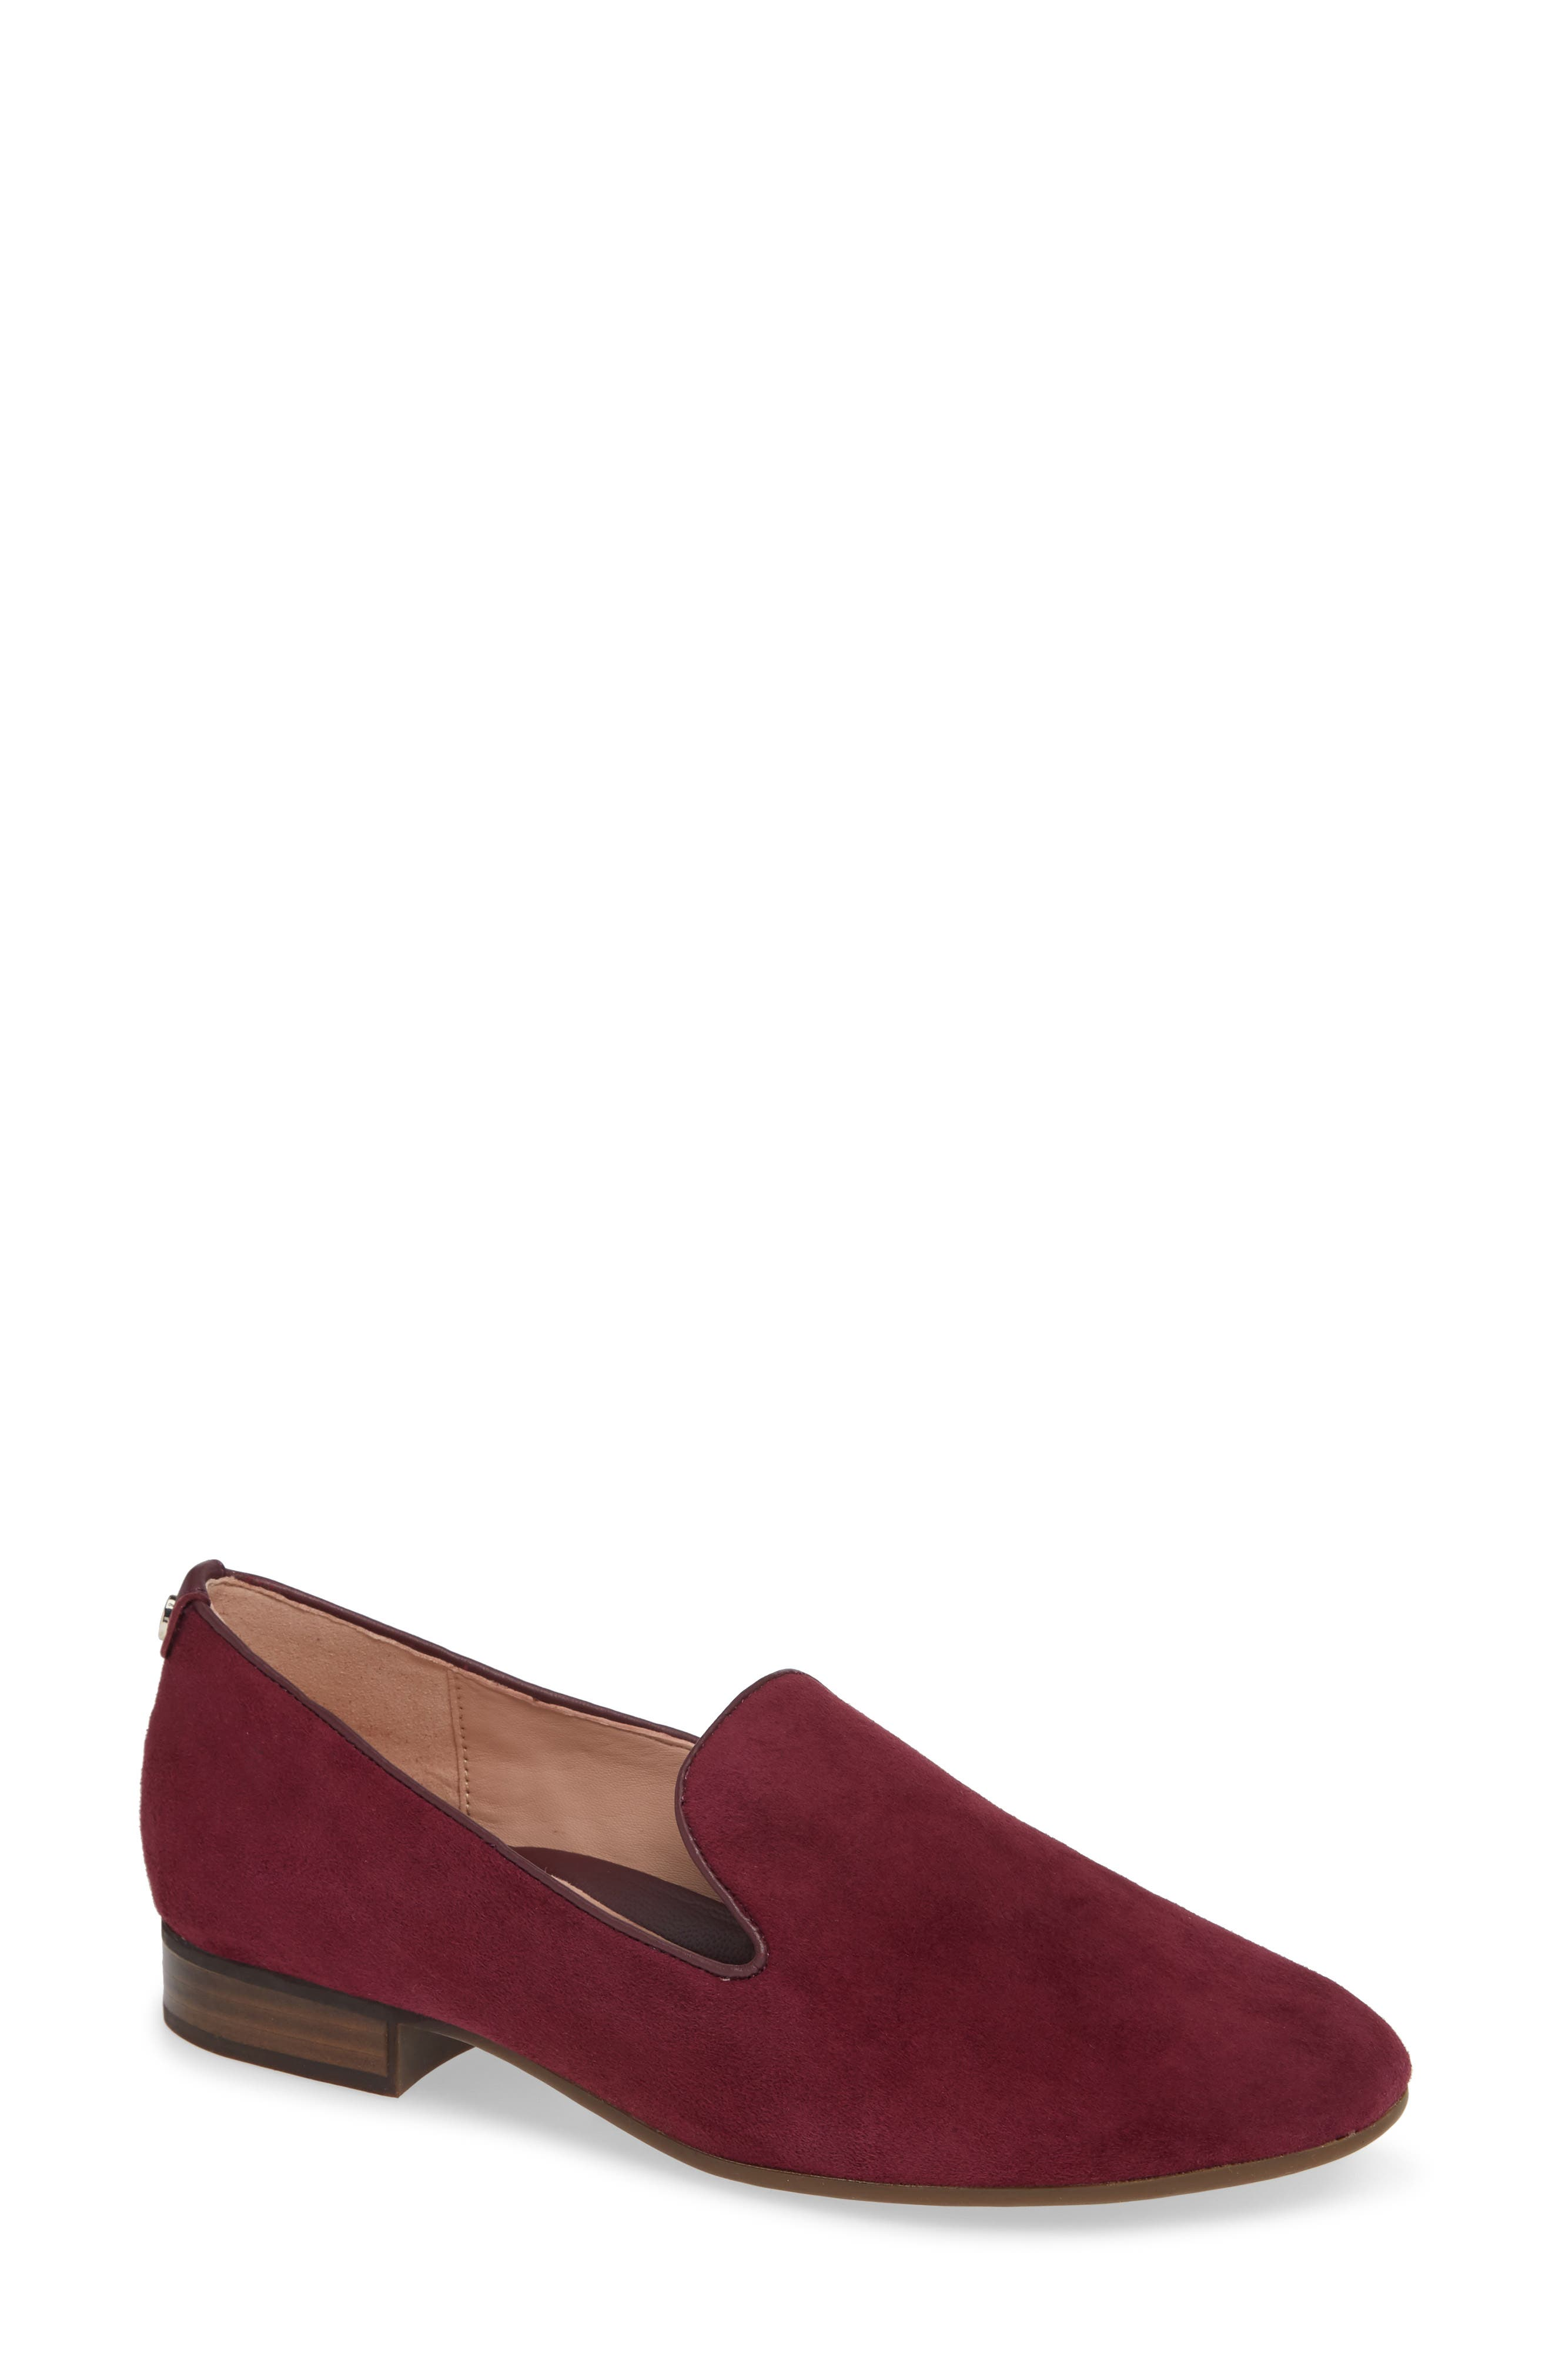 TARYN ROSE Bryanna Loafer, Main, color, FIG SUEDE